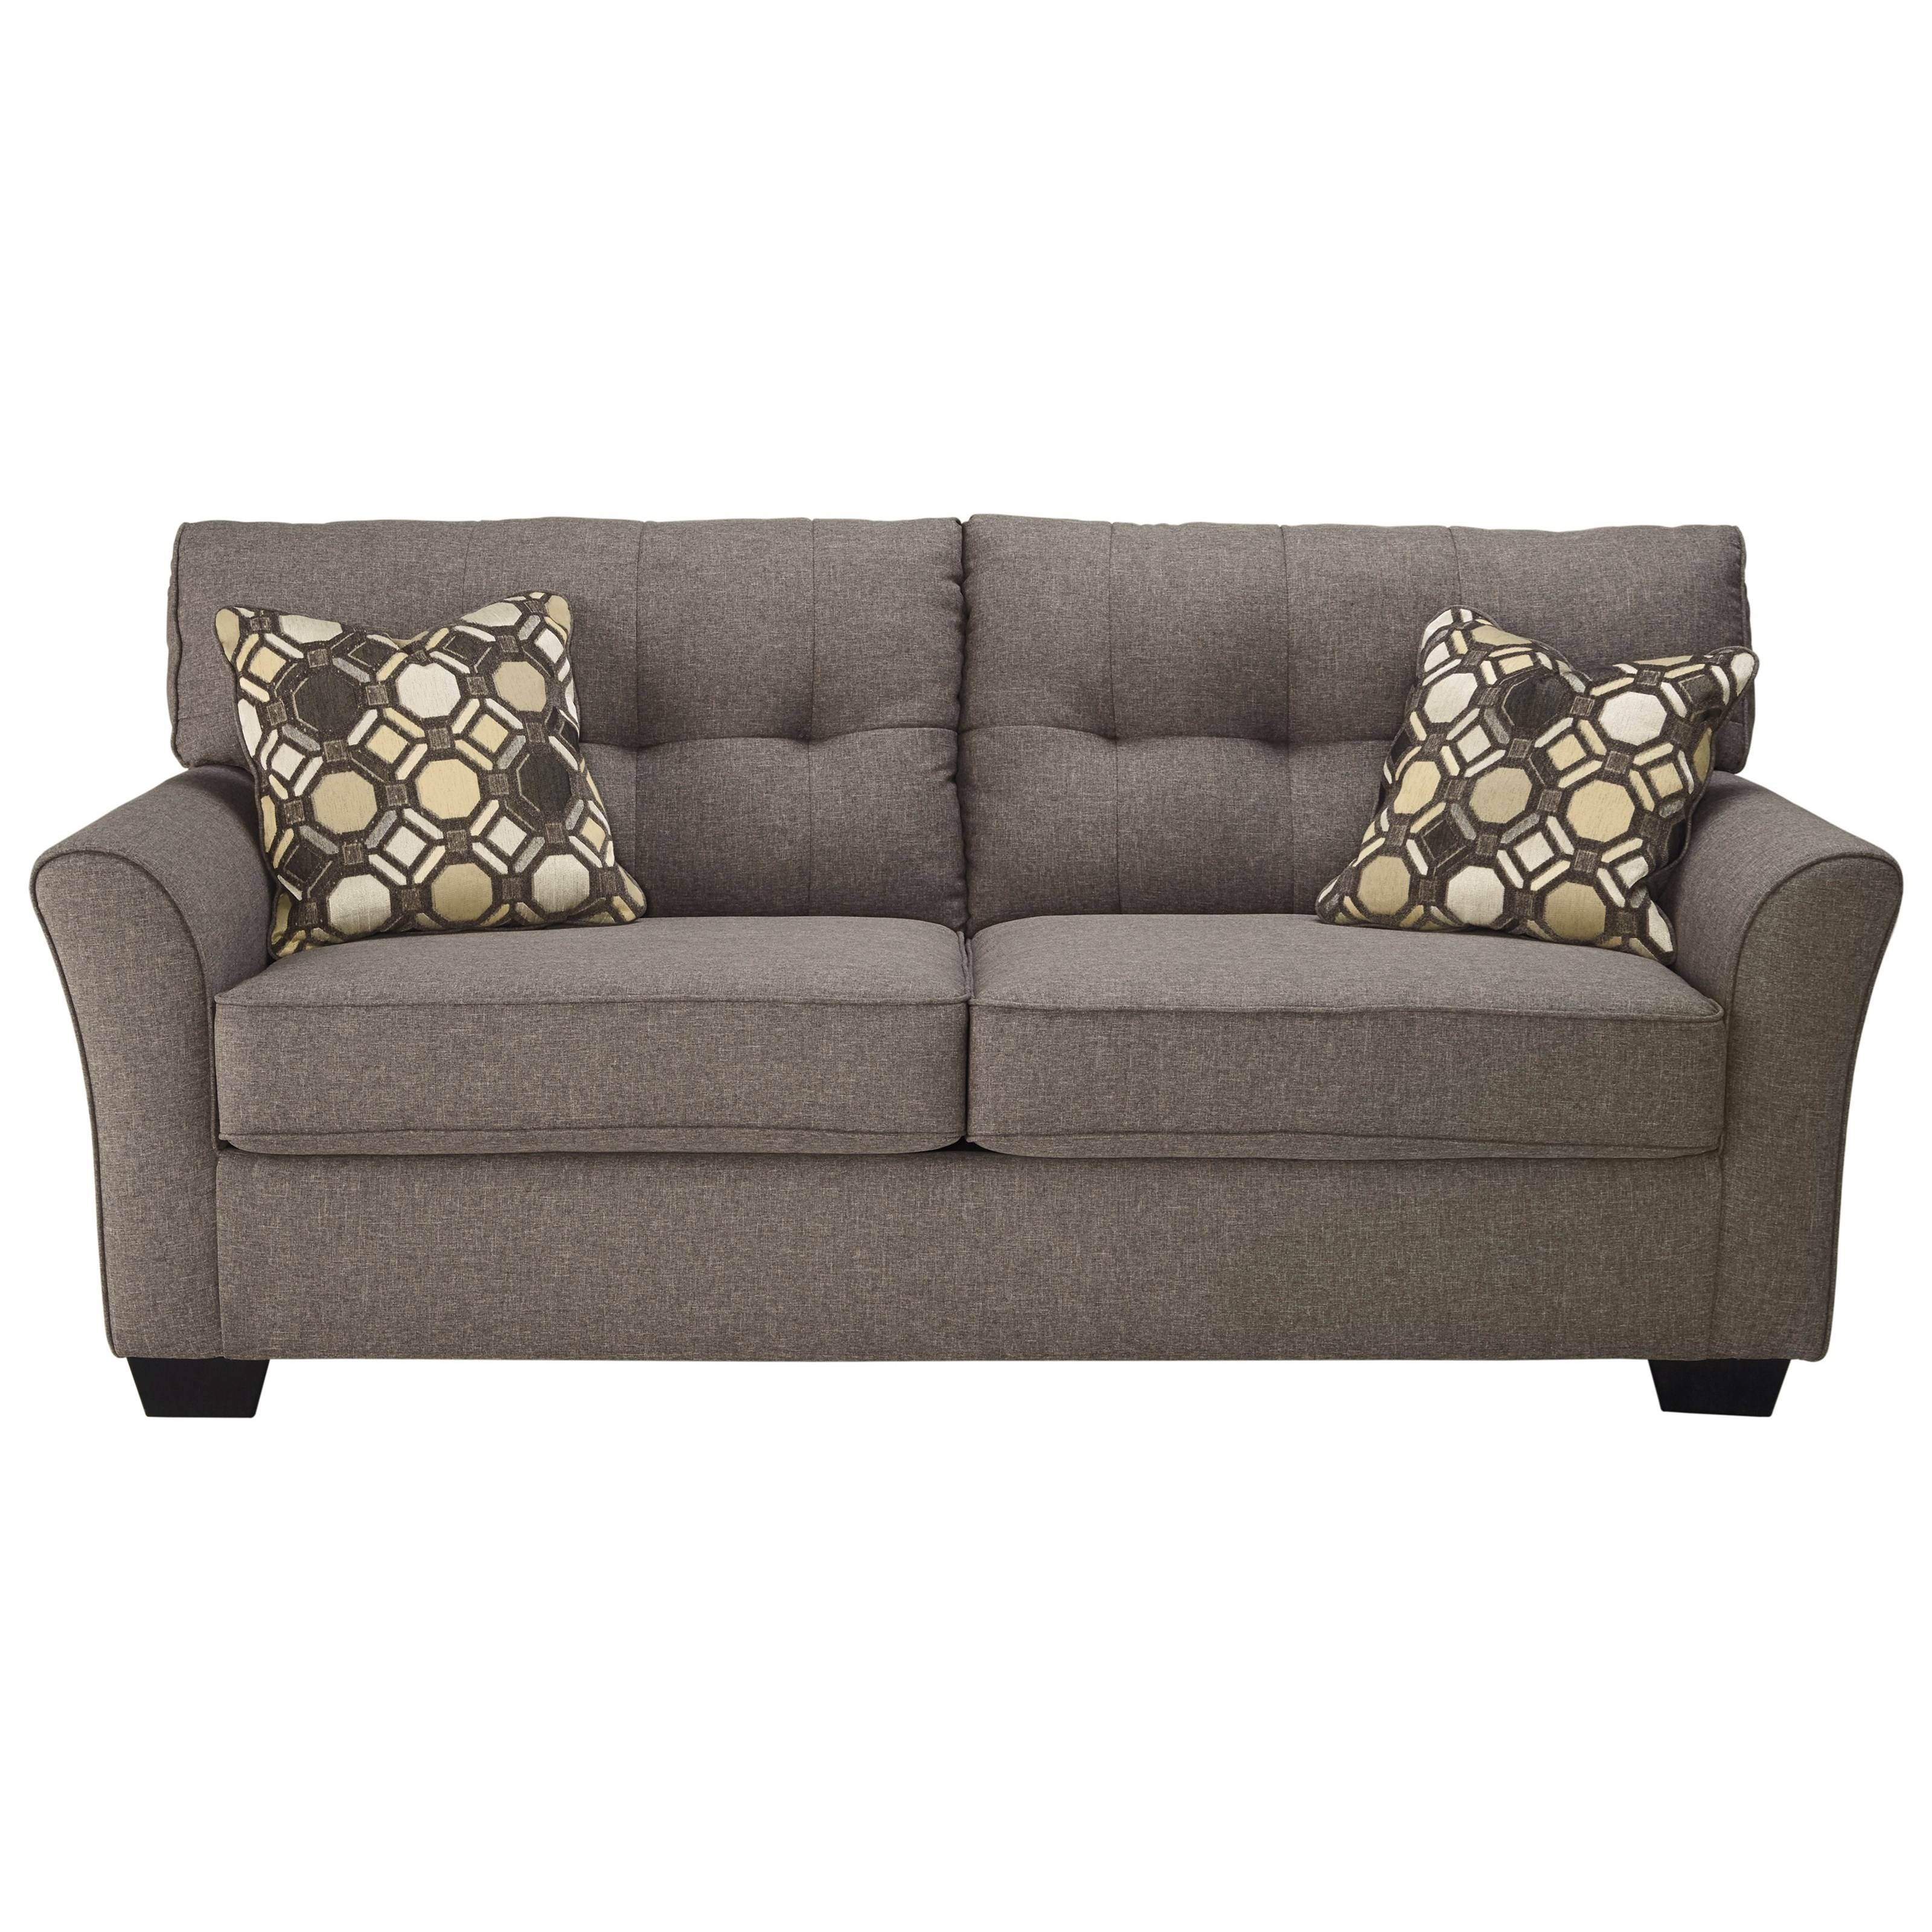 Signature Designashley Tibbee Contemporary Sofa With Tufted Pertaining To Ashley Tufted Sofa (View 7 of 30)